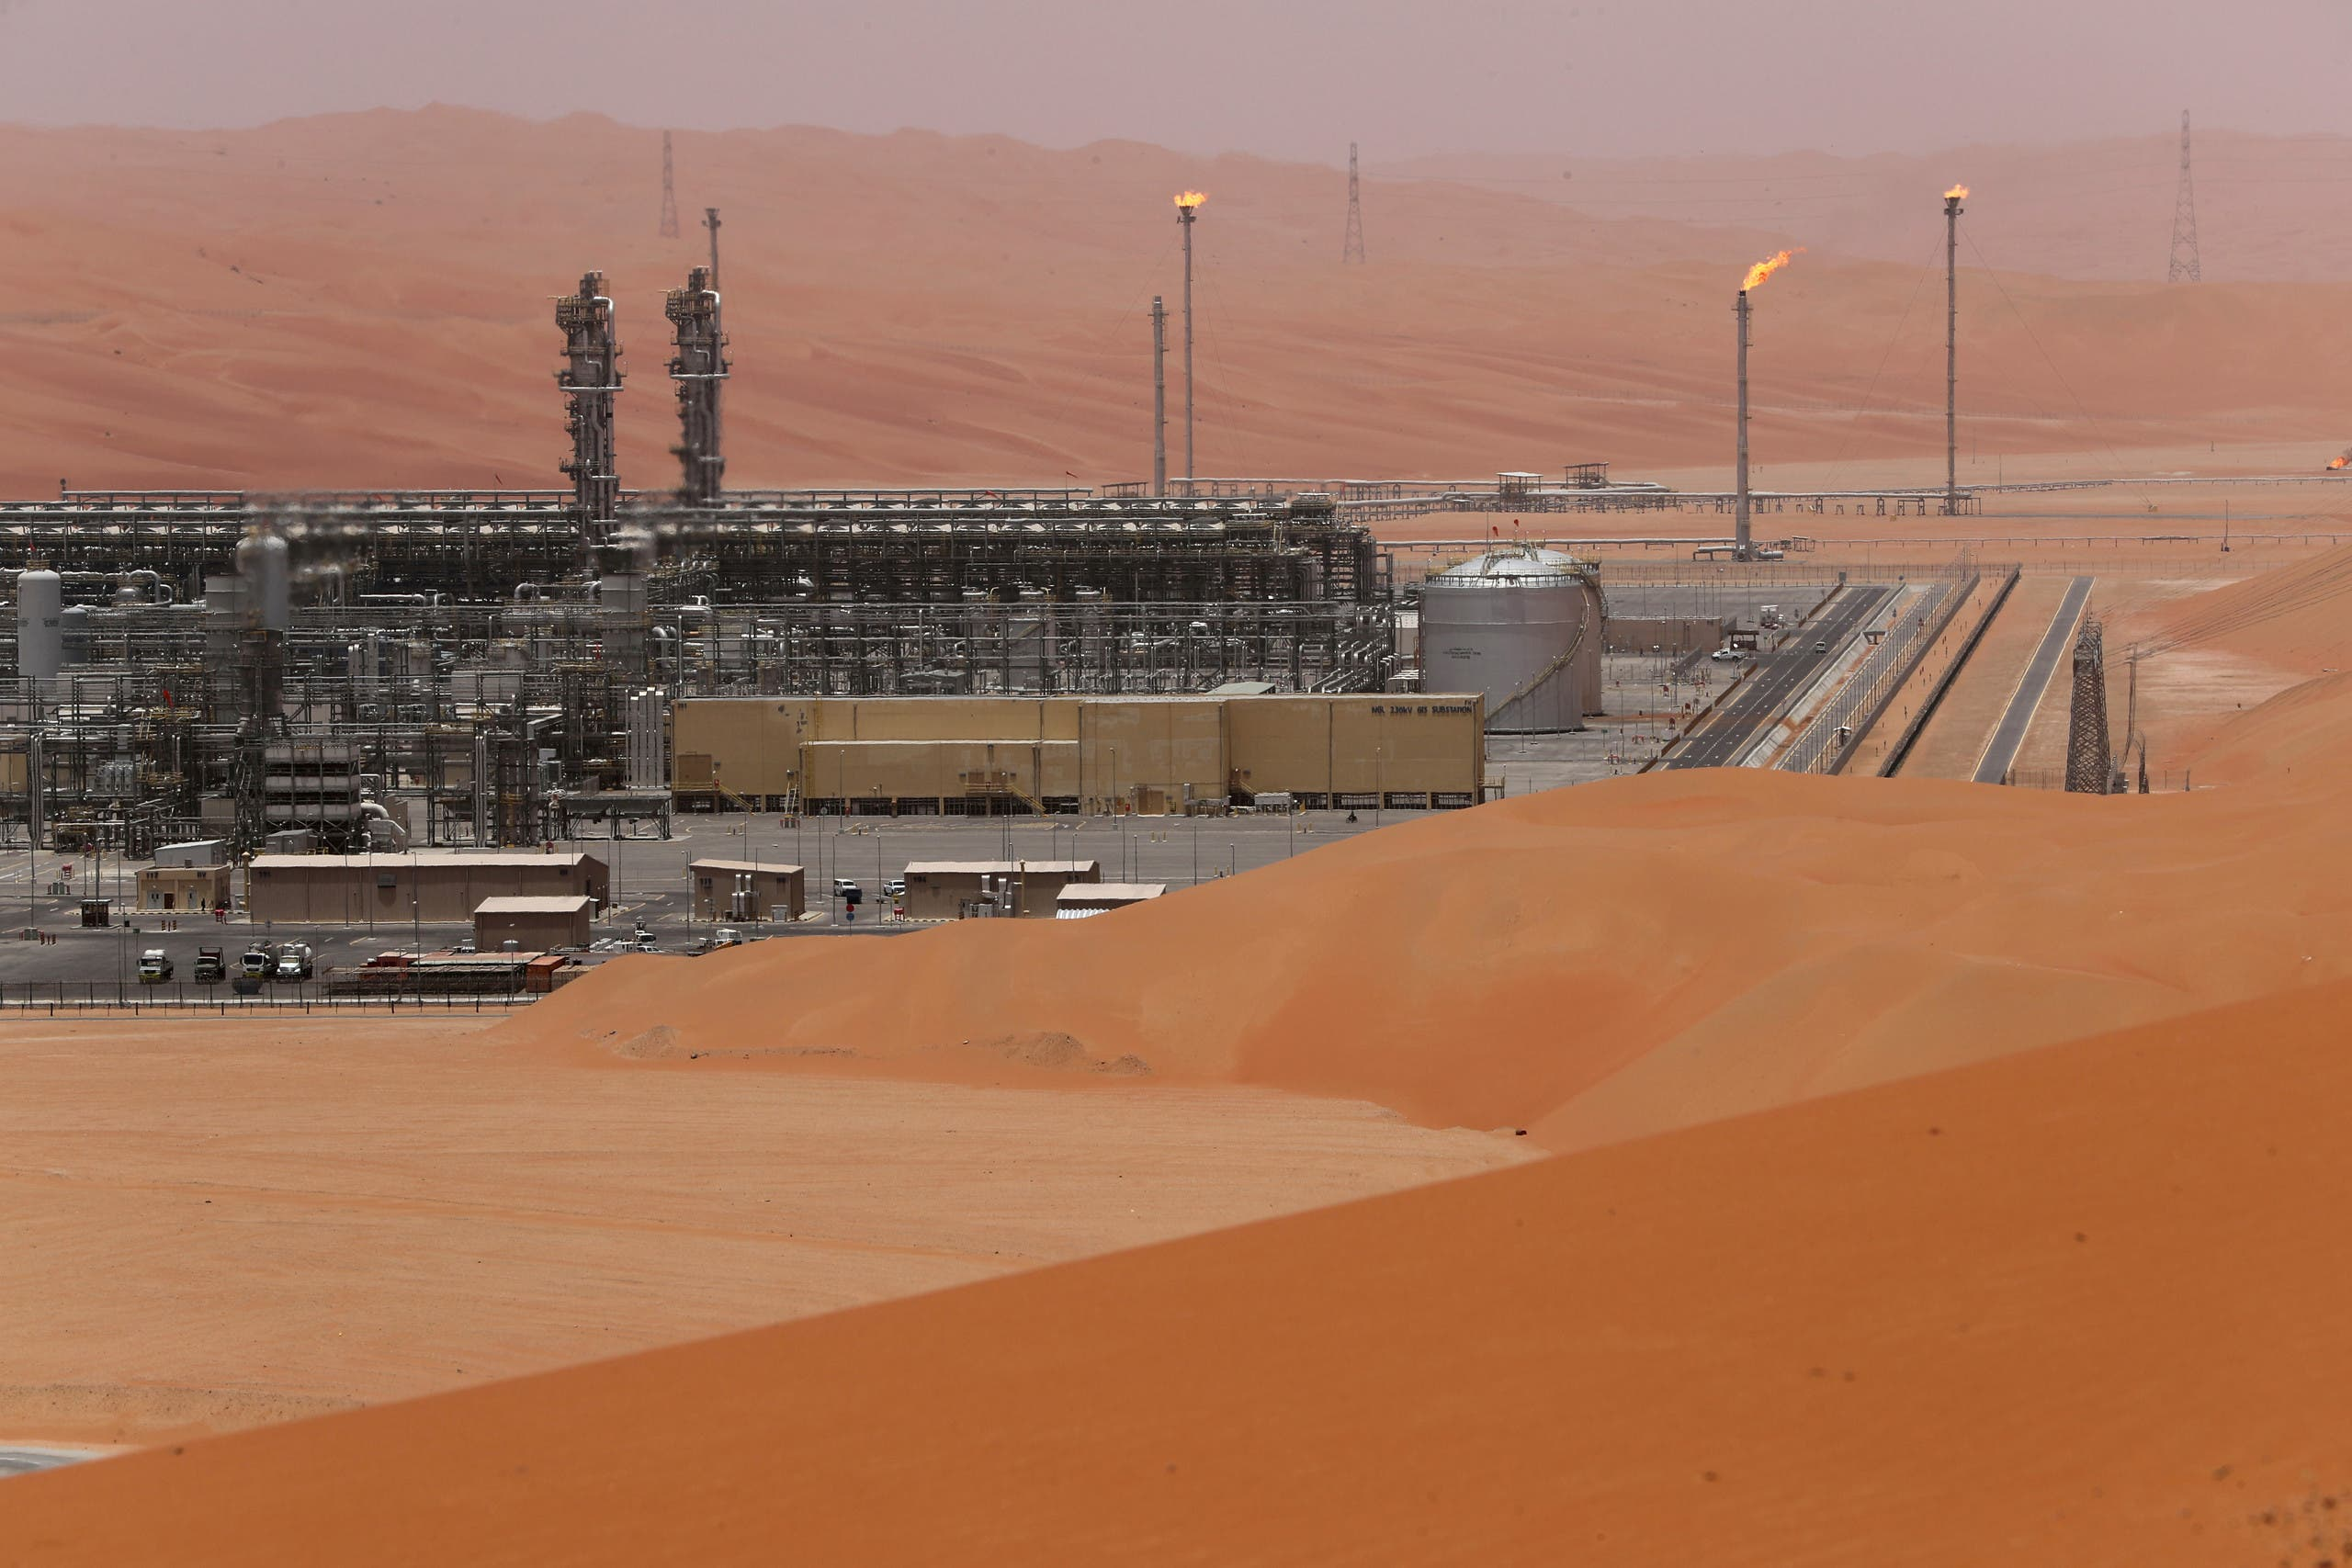 General view of the Natural Gas Liquids (NGL) facility in Saudi Aramco's Shaybah oilfield at the Empty Quarter in Saudi Arabia May 22, 2018. (Reuters)